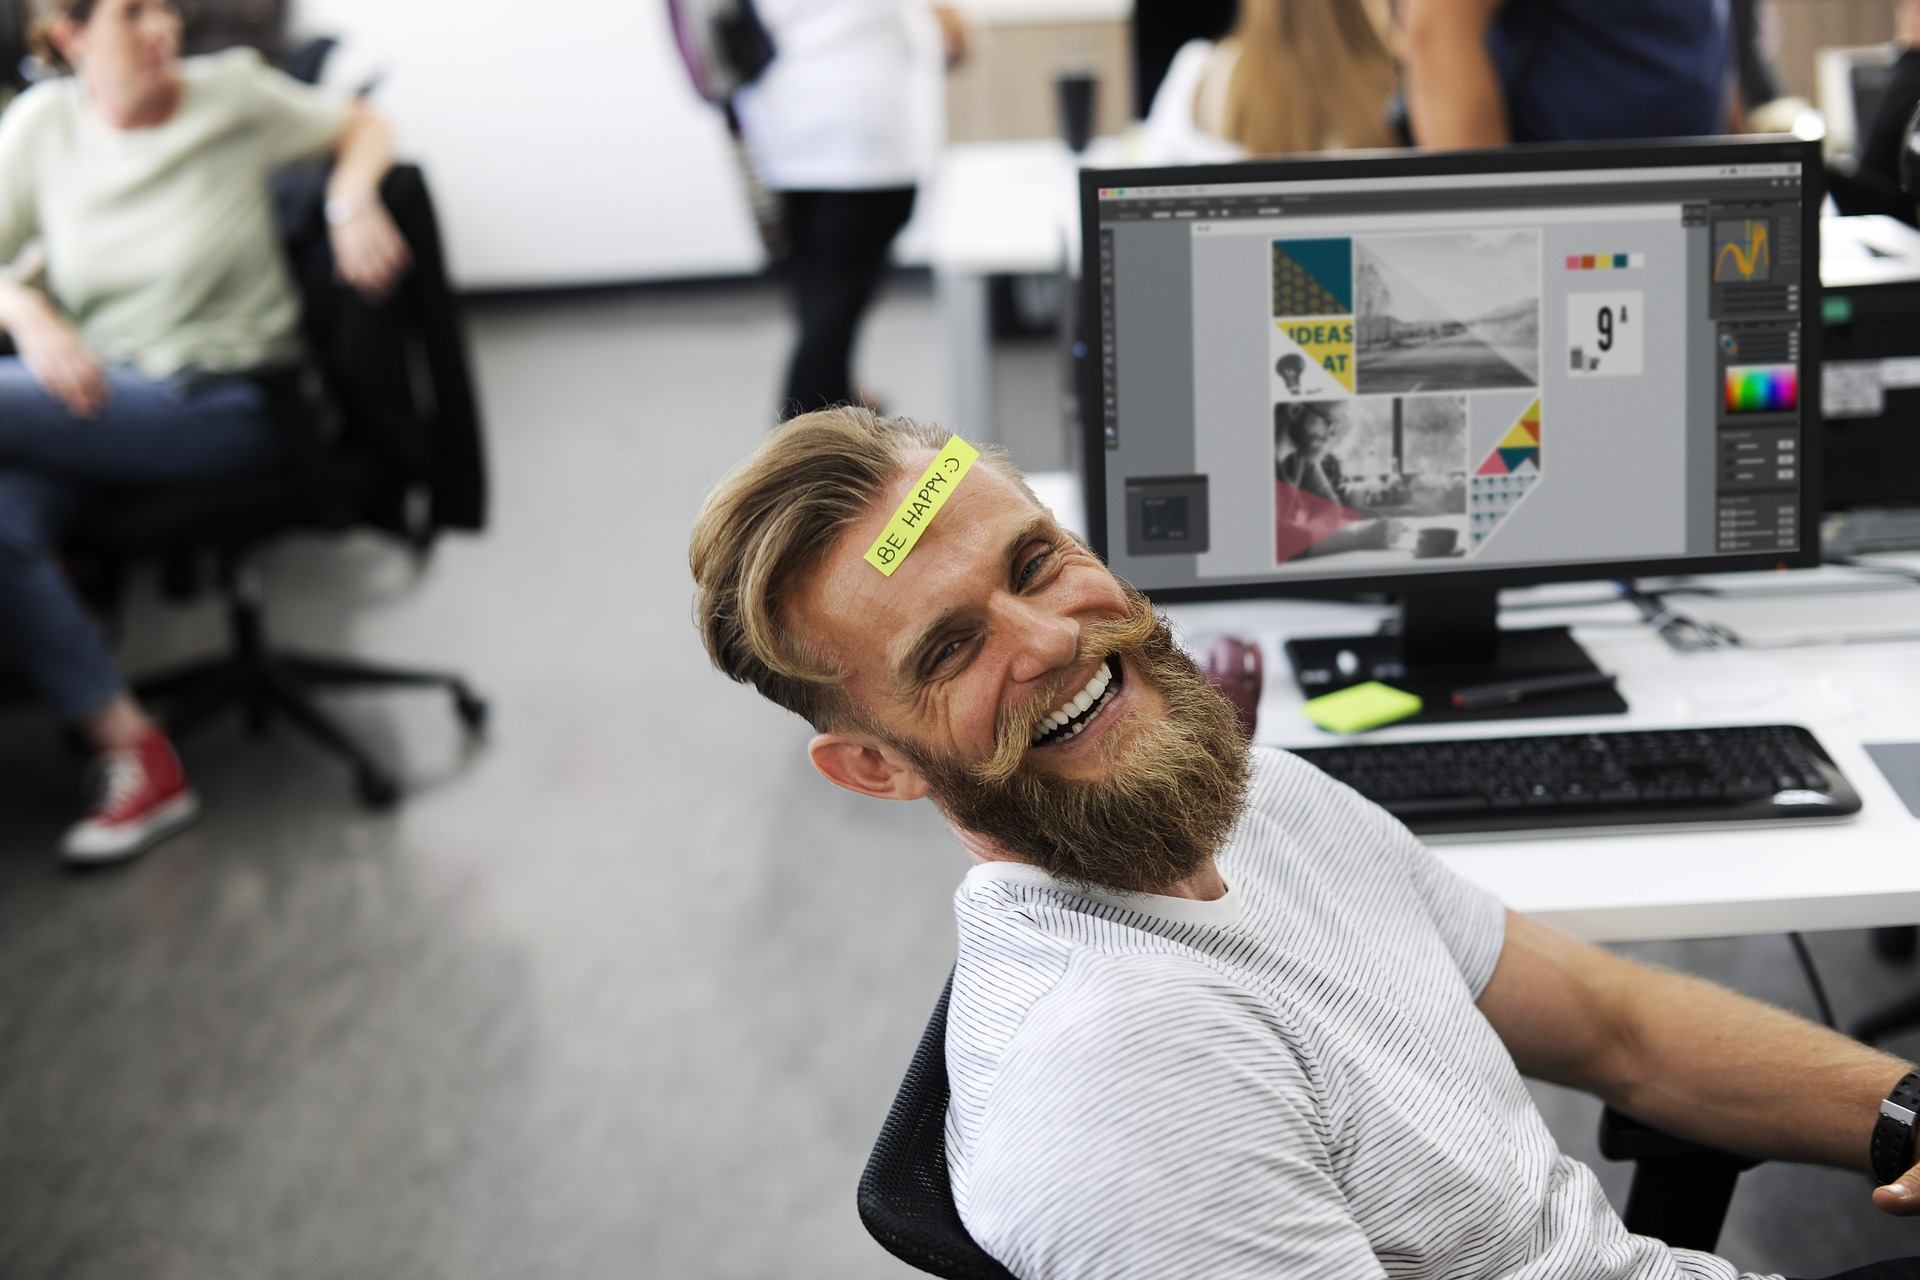 Pros in Working at FAcebook: Perks and Benefits makes a man with a sticky note on his forehead  laugh in front of his laptop